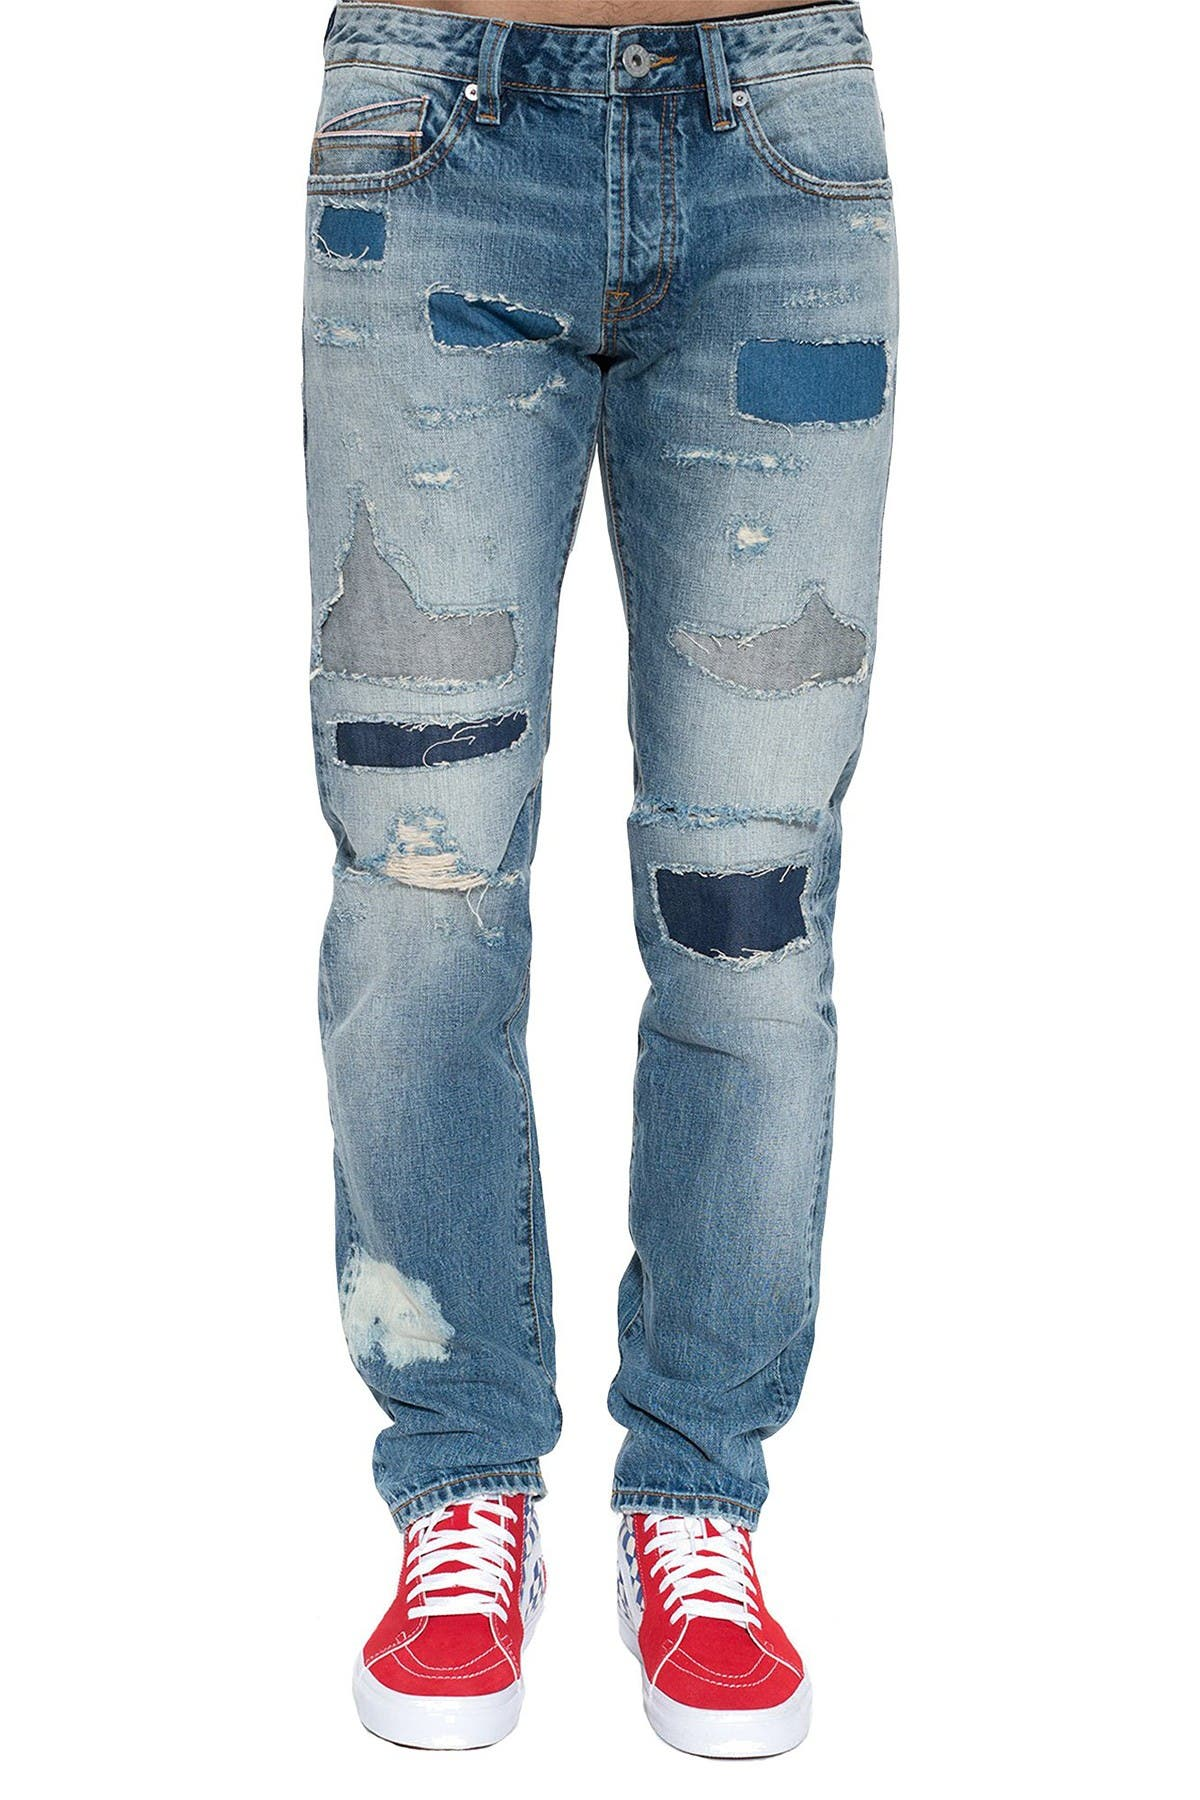 Image of Cult Of Individuality Greaser Distressed Slim Straight Jeans